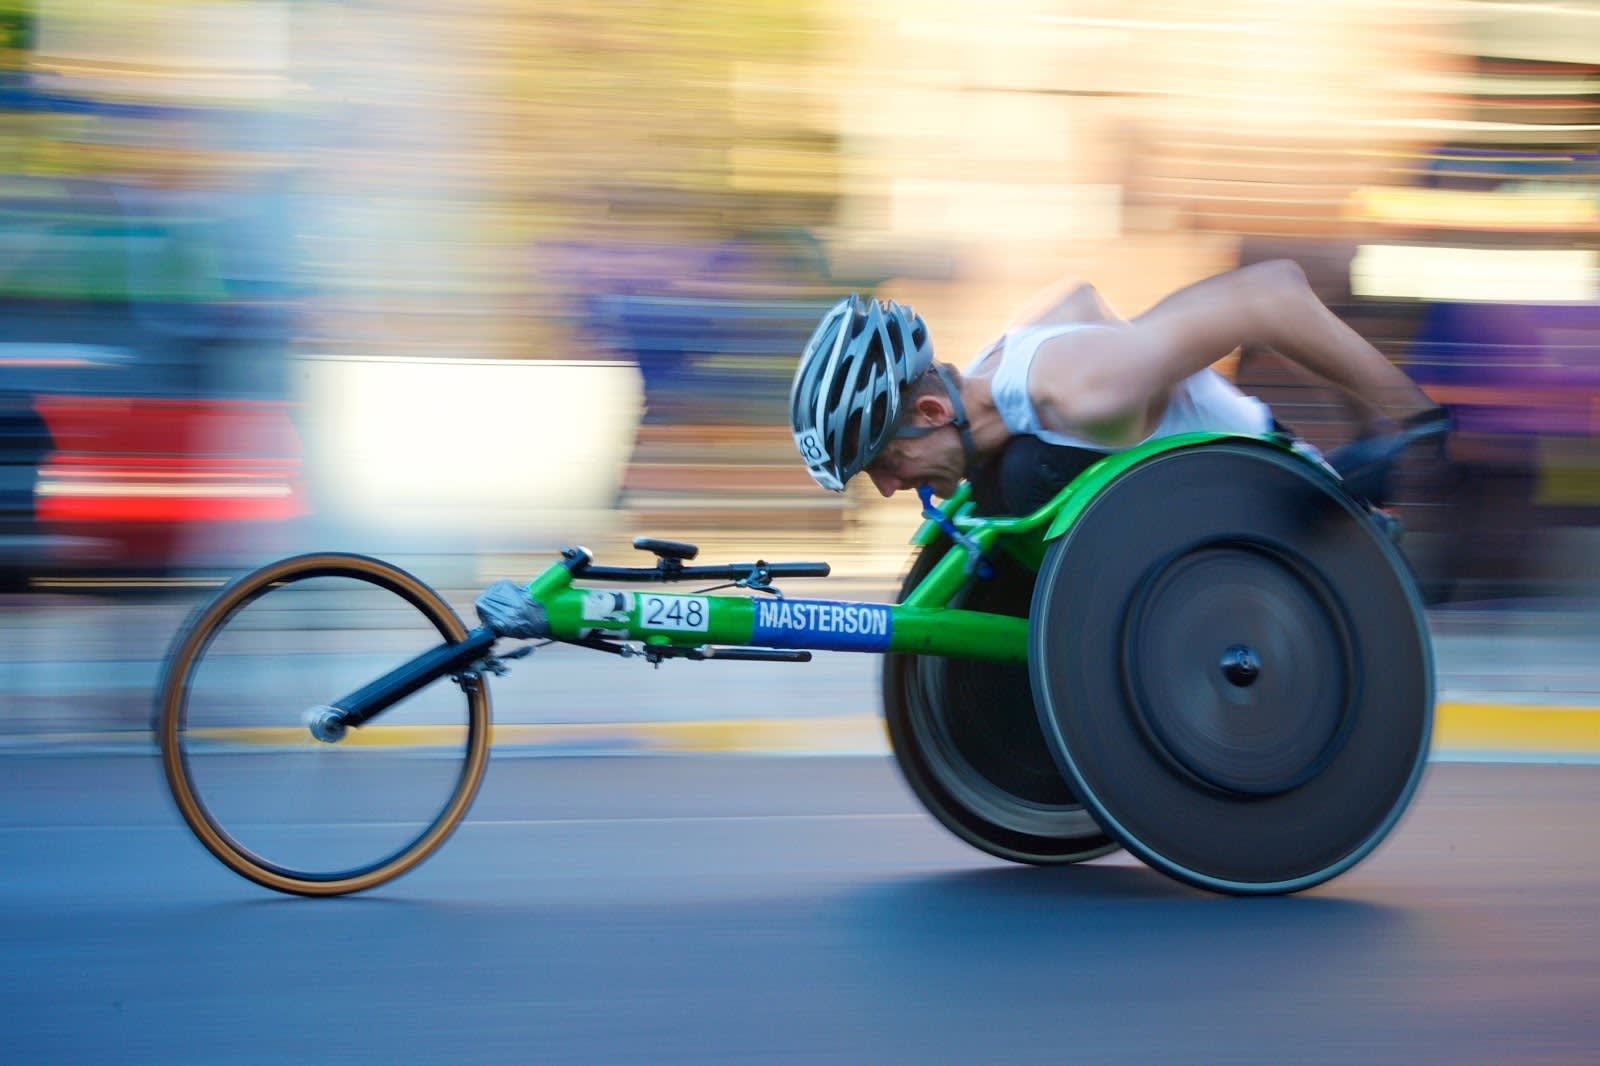 An athlete with disabilities competing in a race.